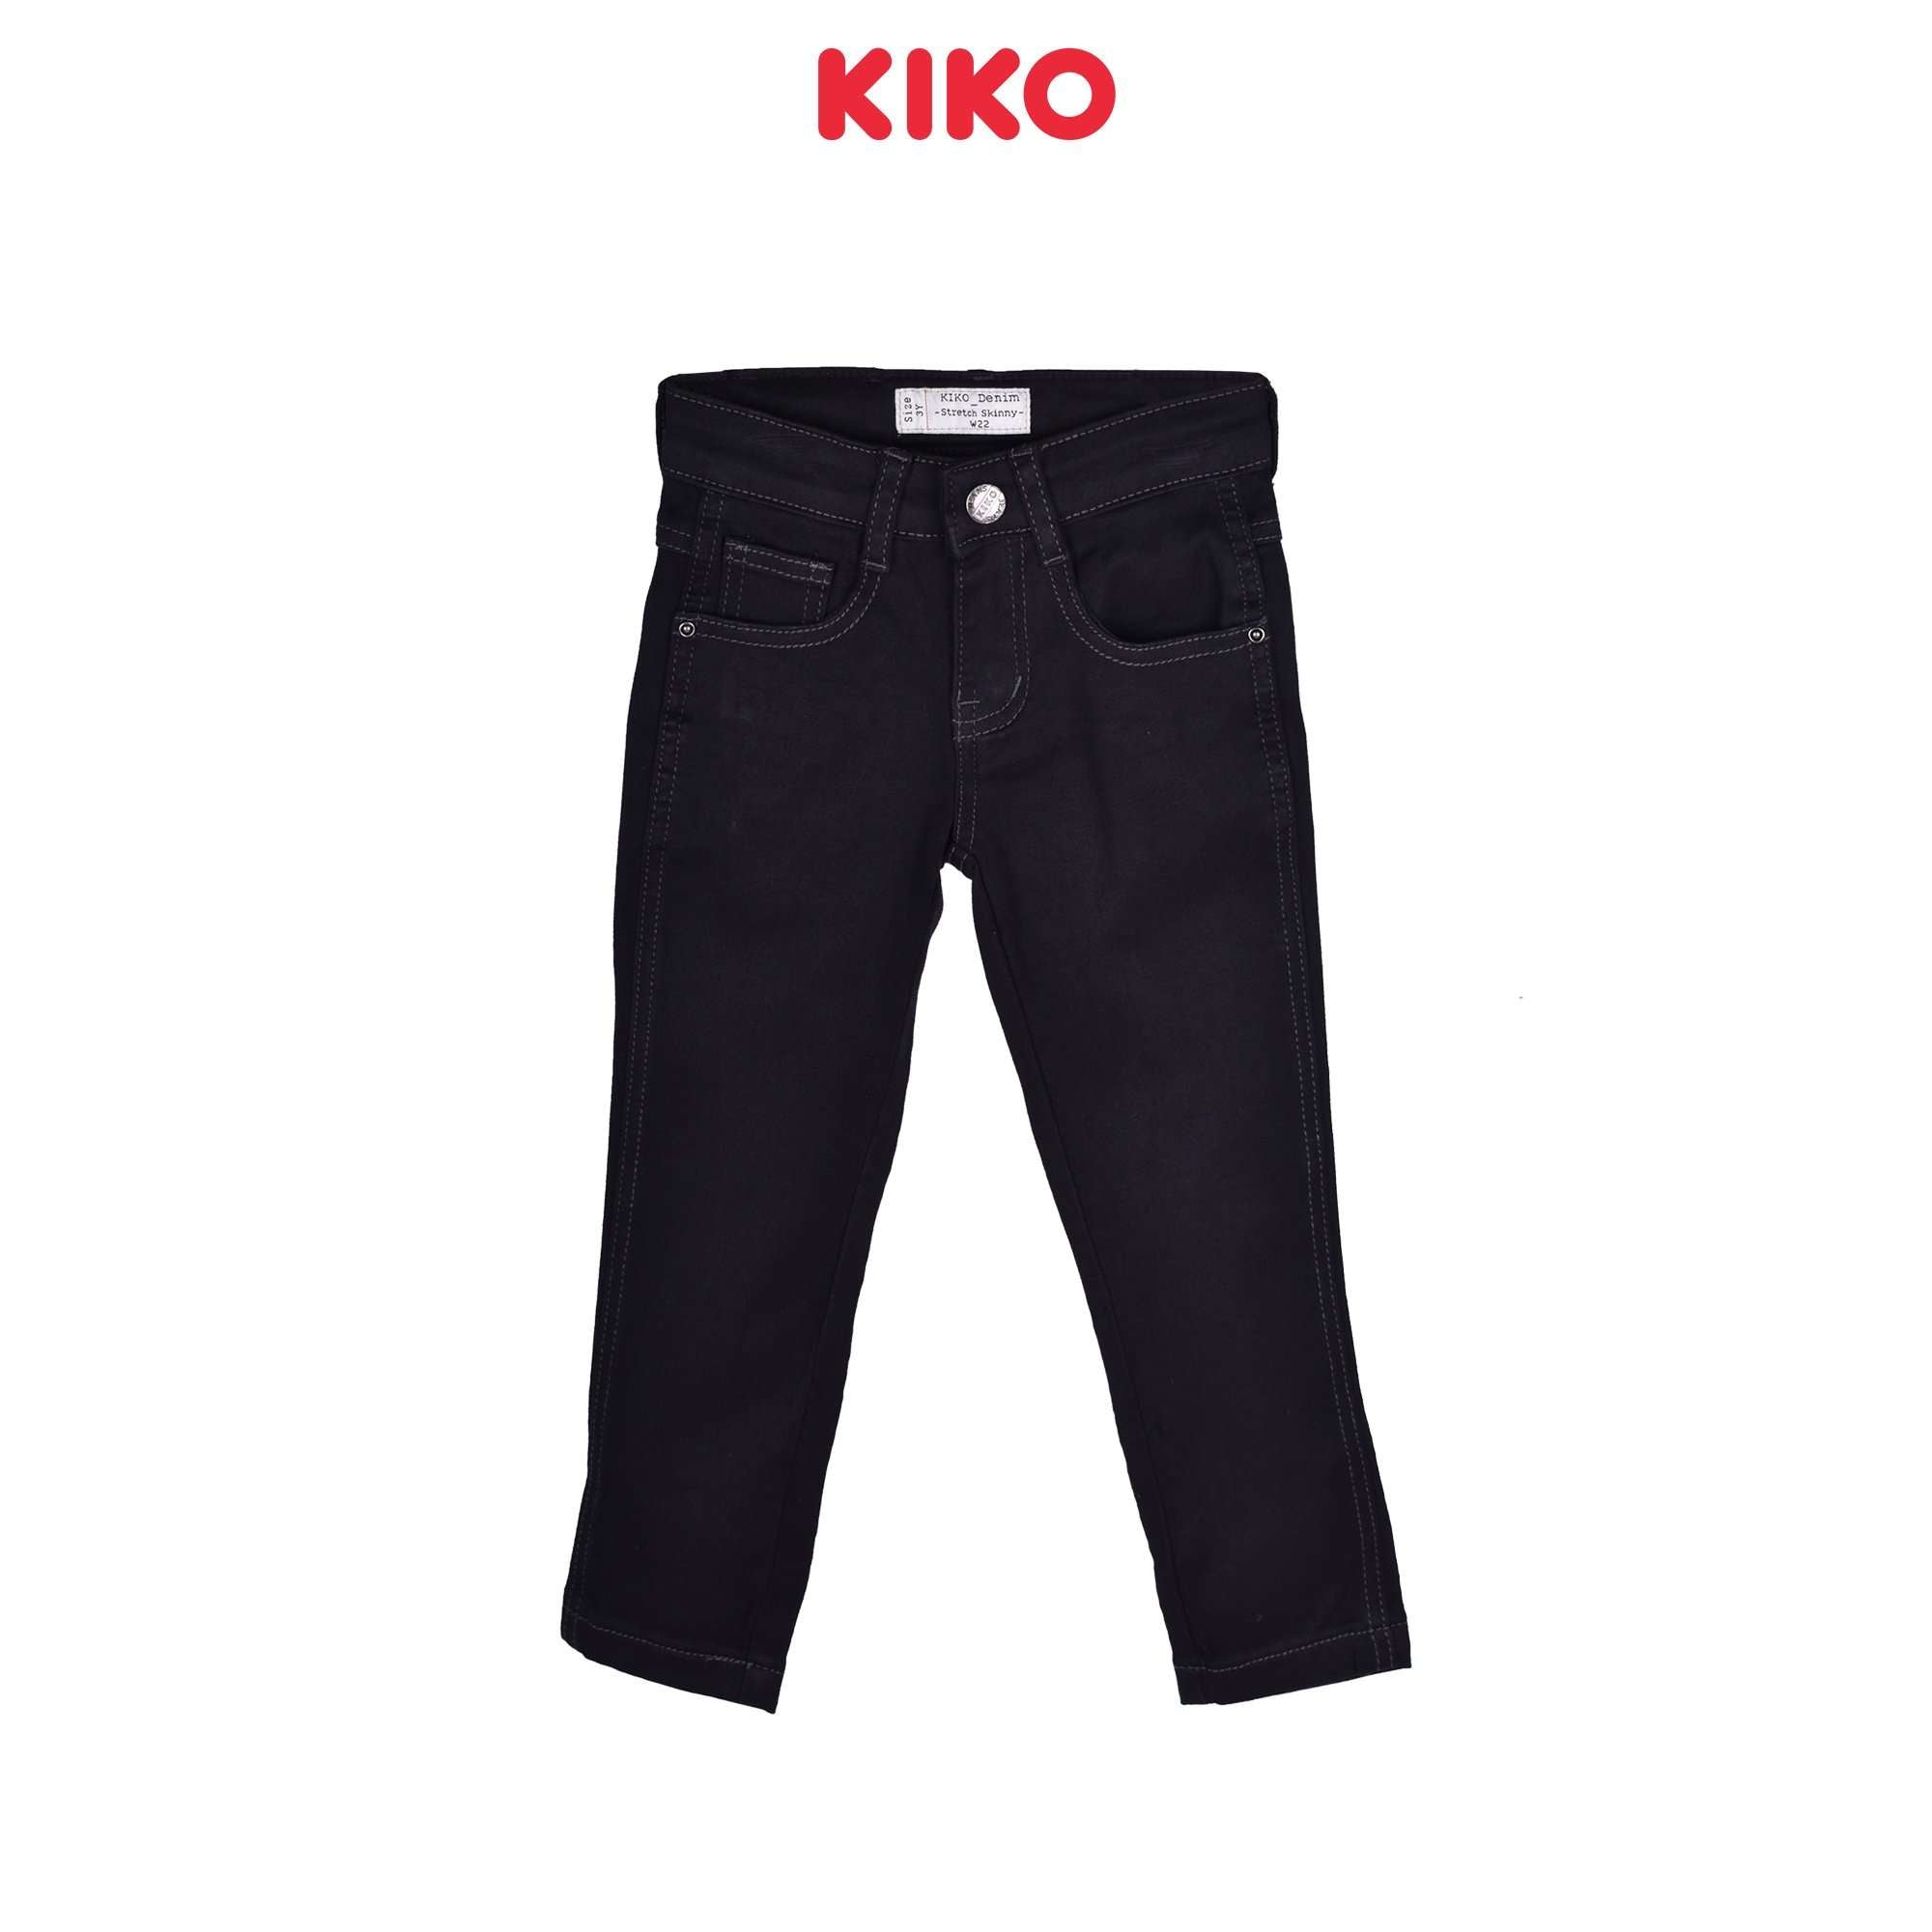 KIKO Boy Jeans Regular Fit 130056-213-G9 : Buy KIKO online at CMG.MY